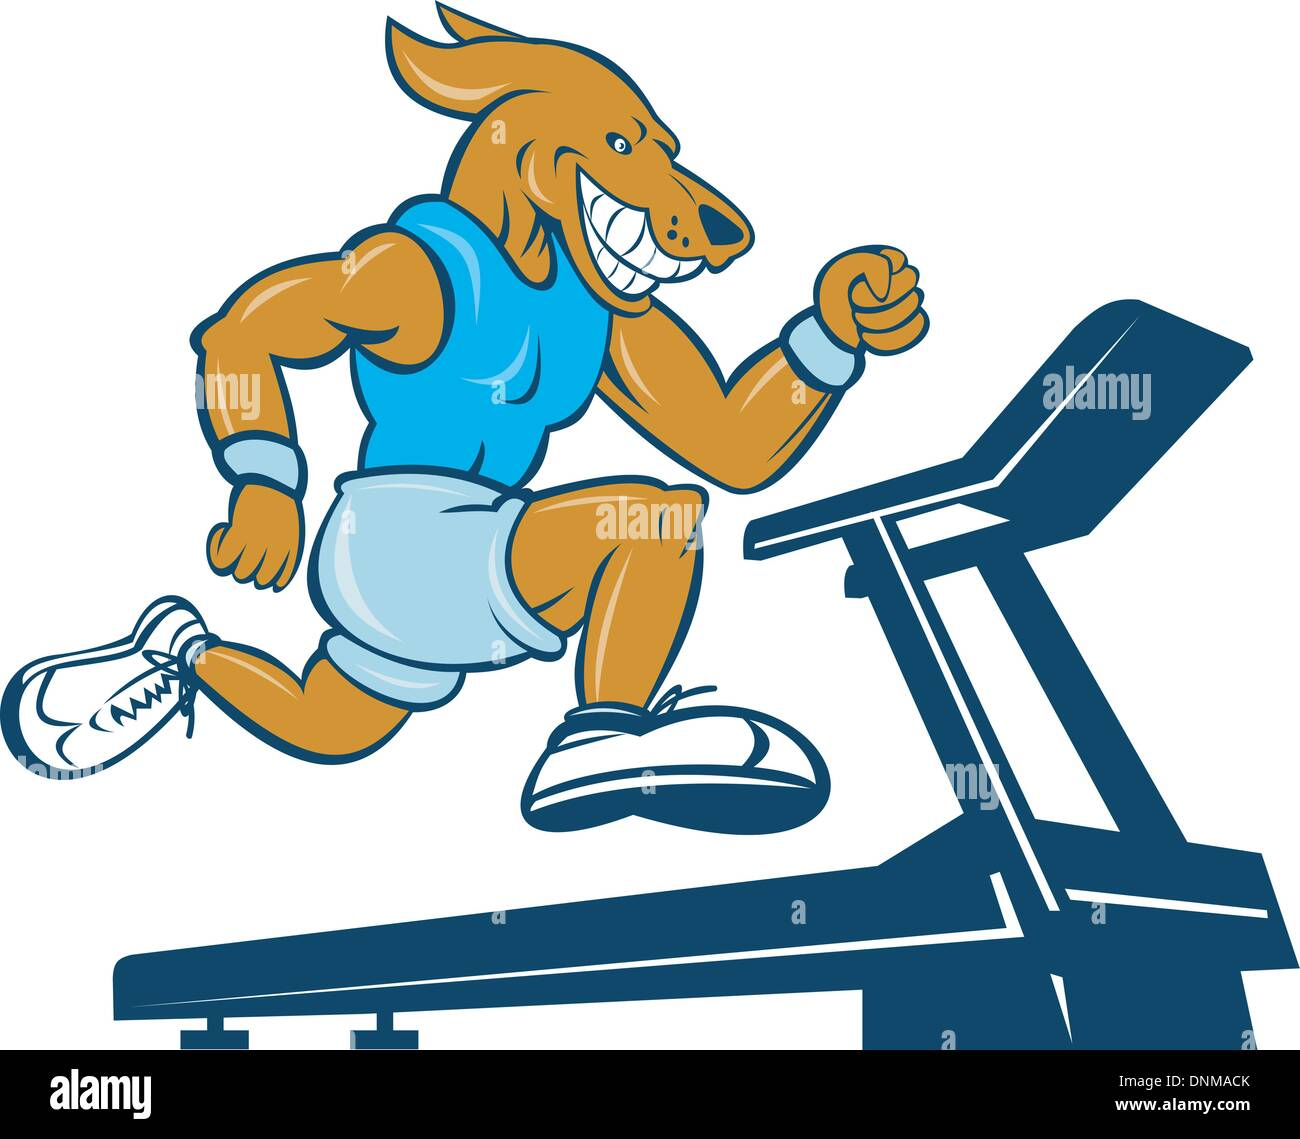 cartoon illustration of a Dog running on tread mill isolated on white background - Stock Image